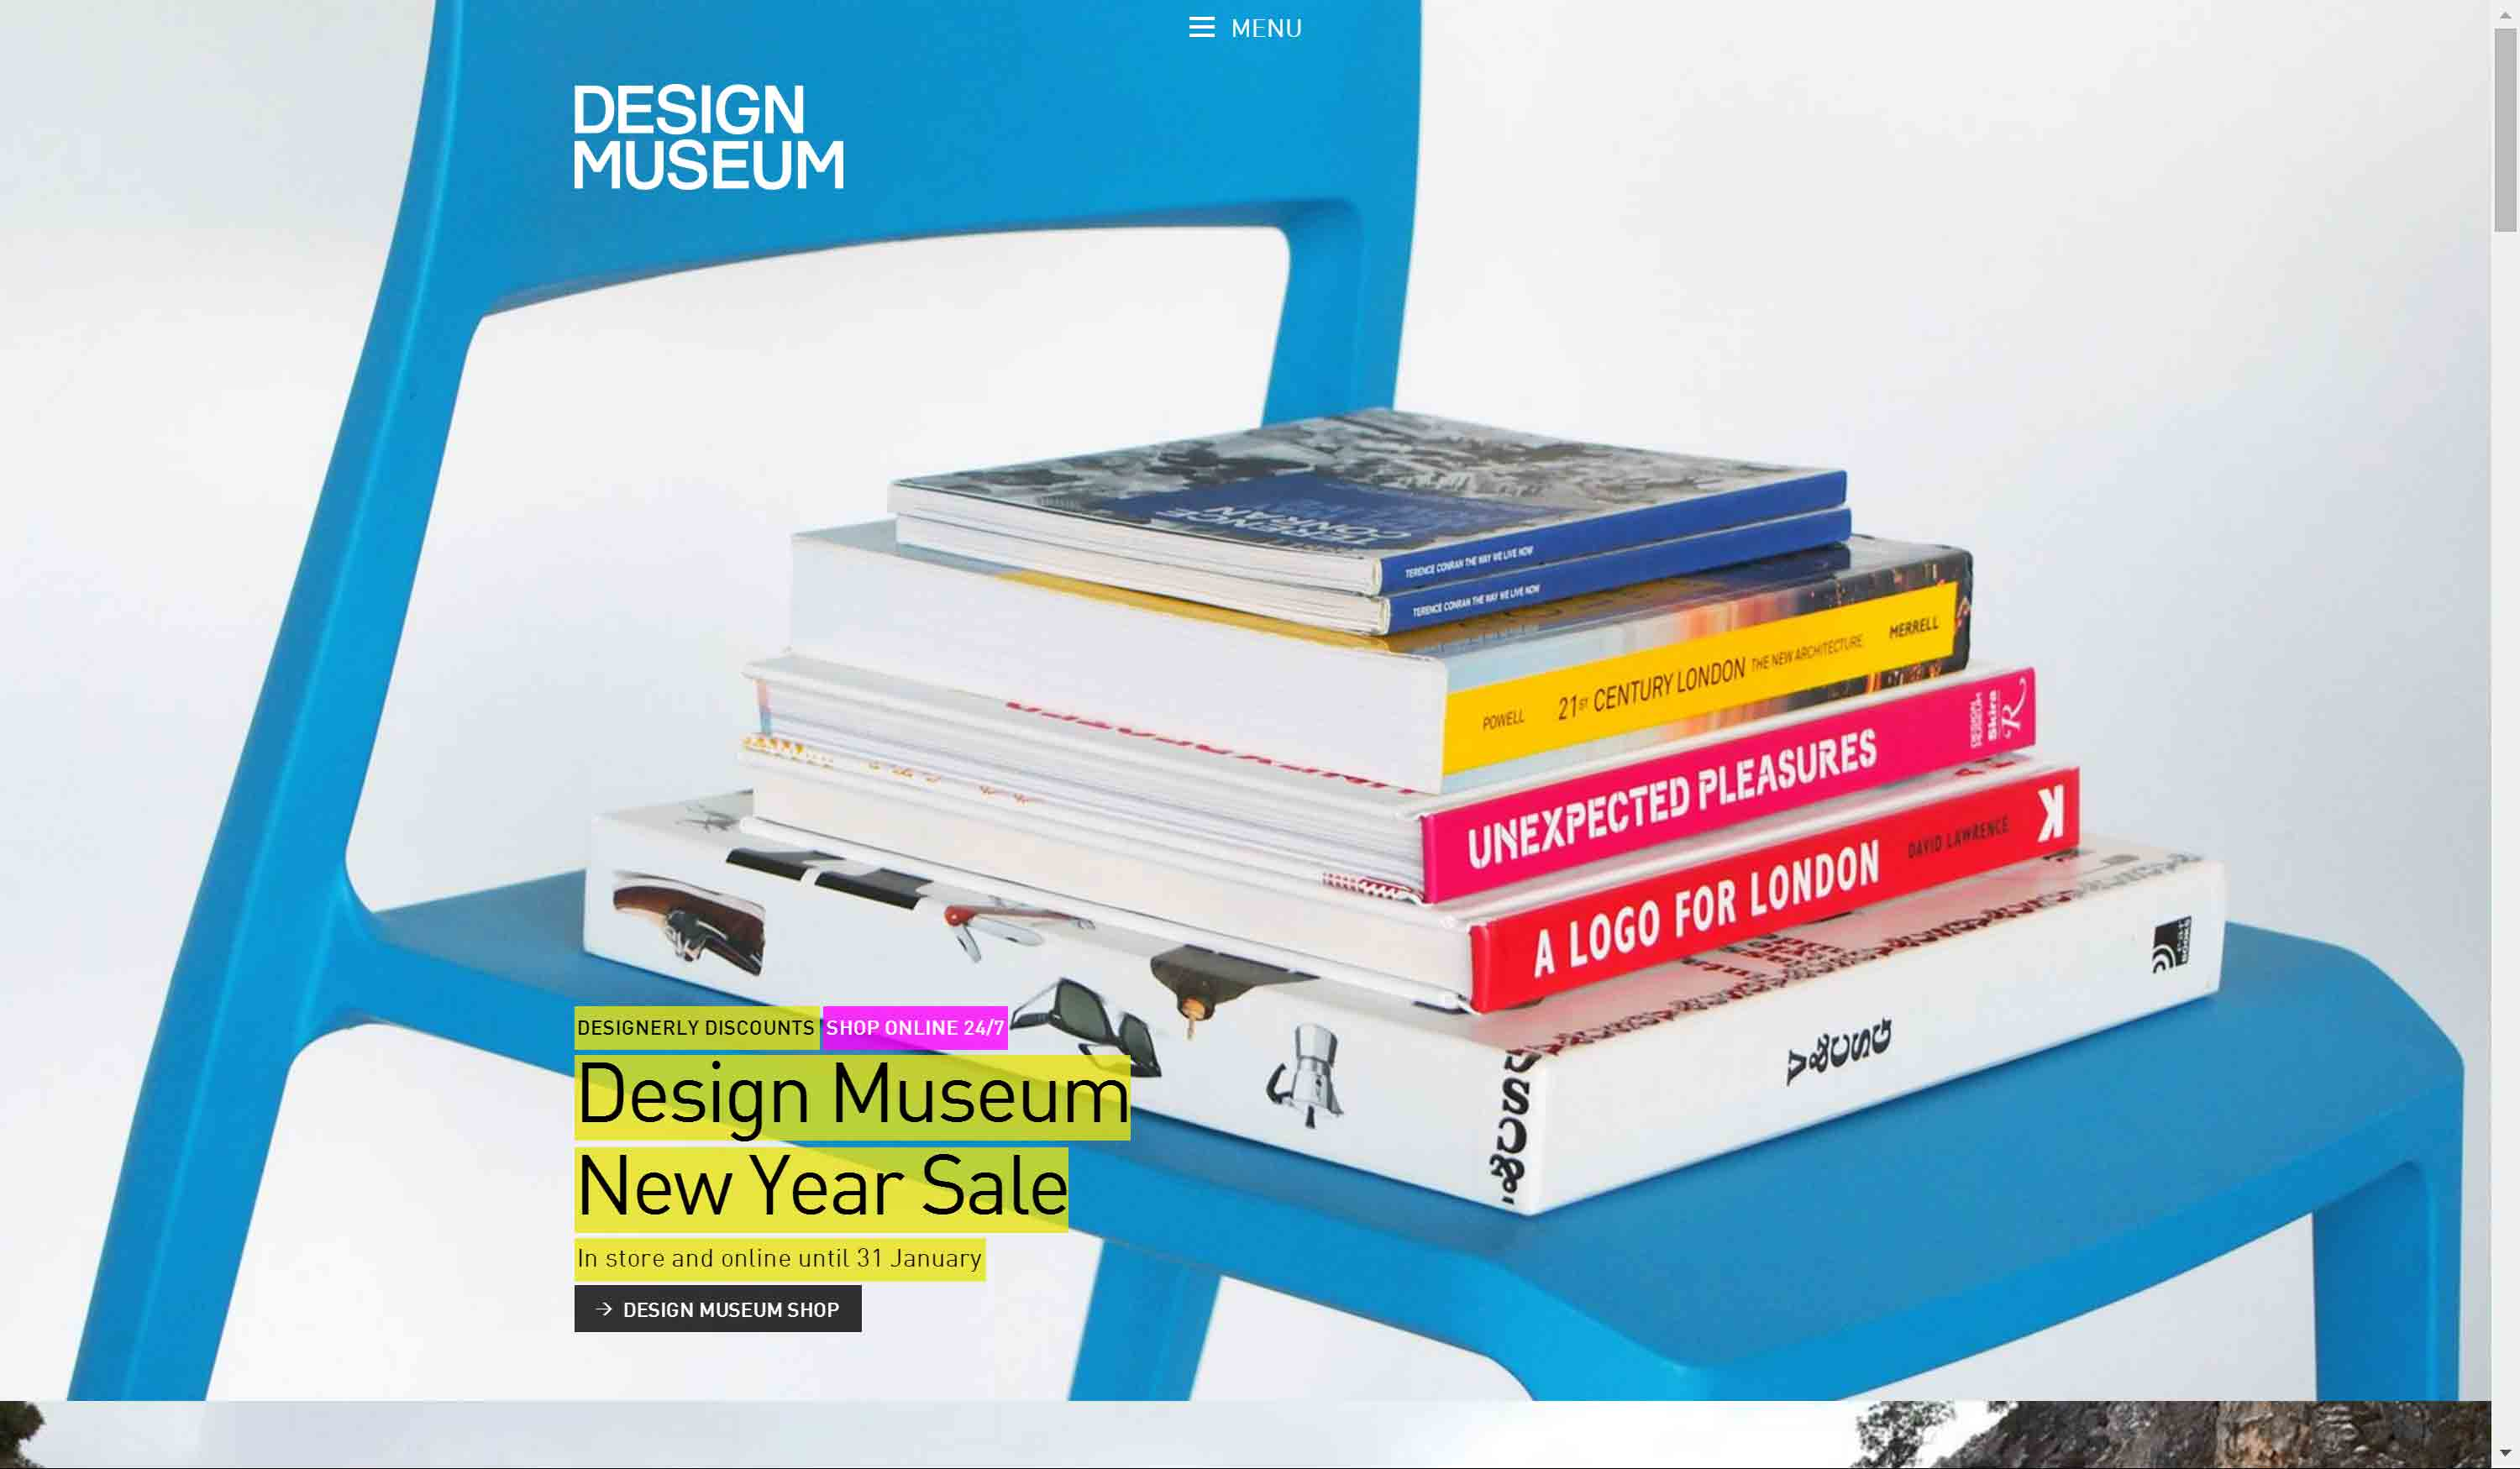 Design Museum home page.